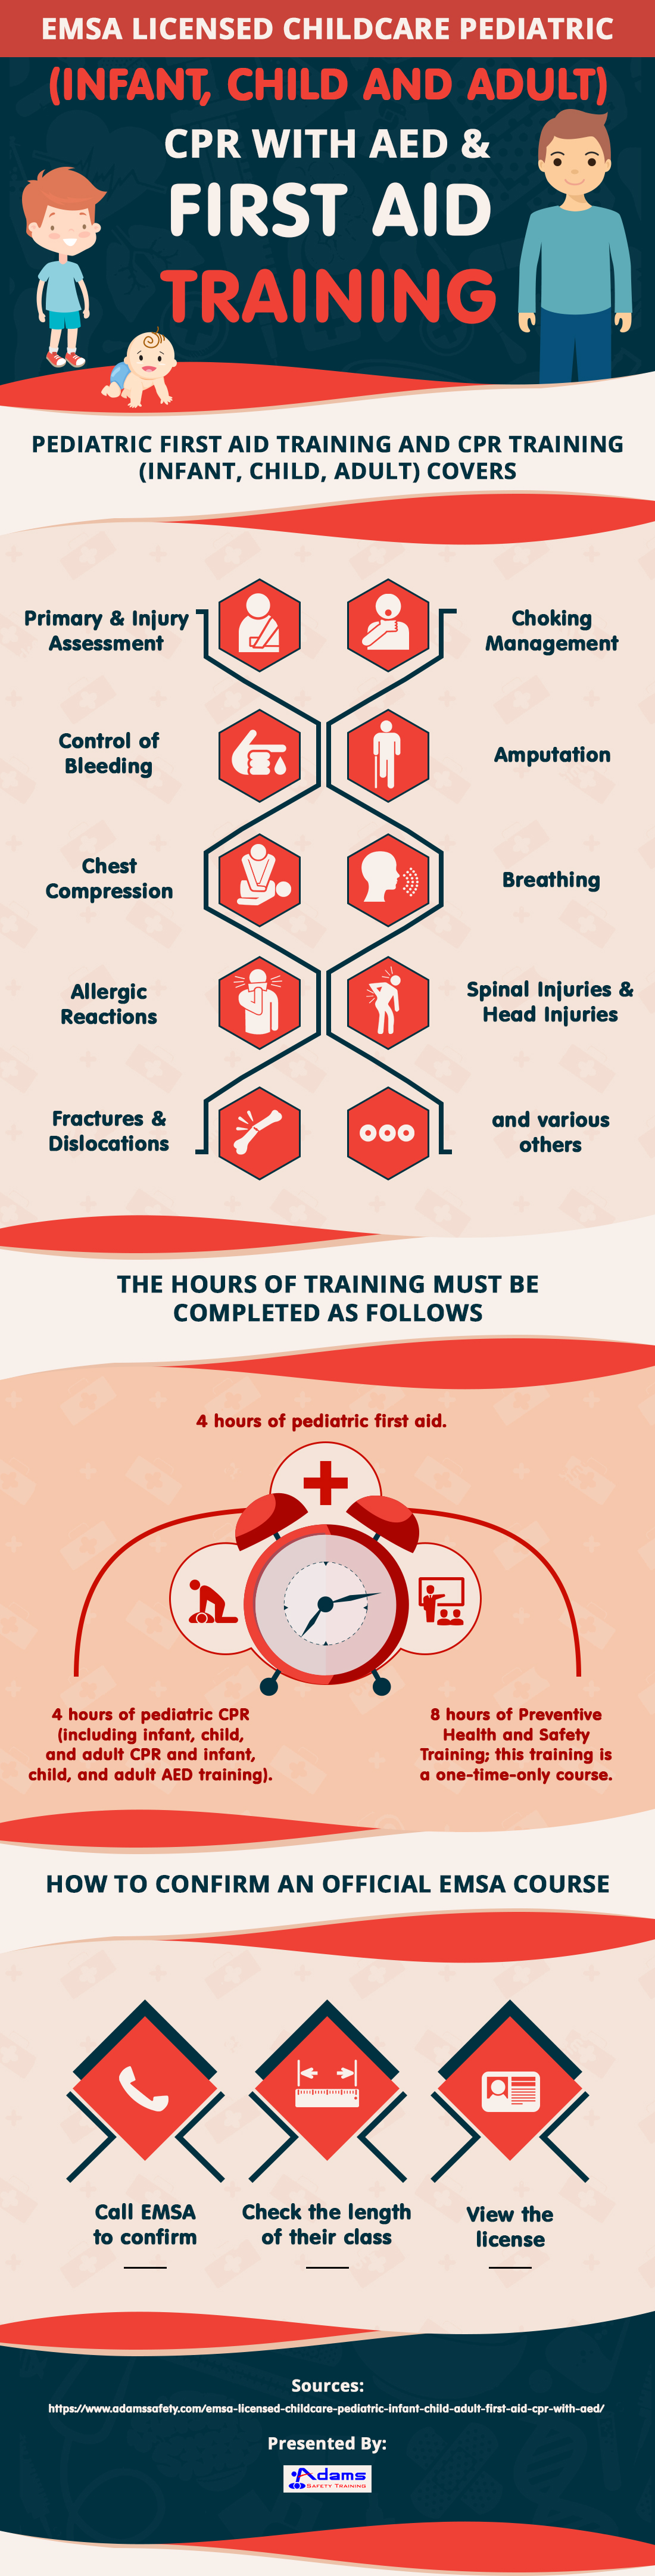 All You Need To Know About Cpr With Aed And First Aid Training